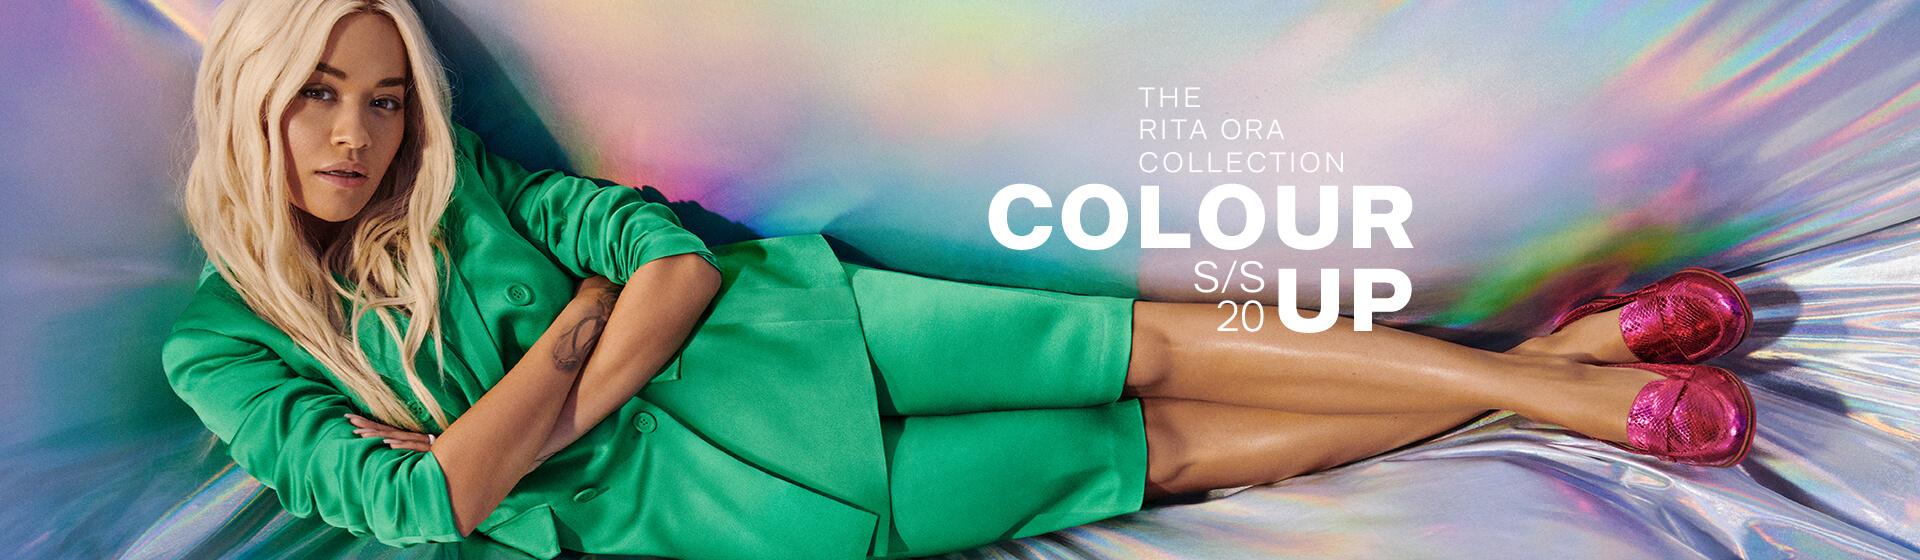 Rita Ora for DEICHMANN